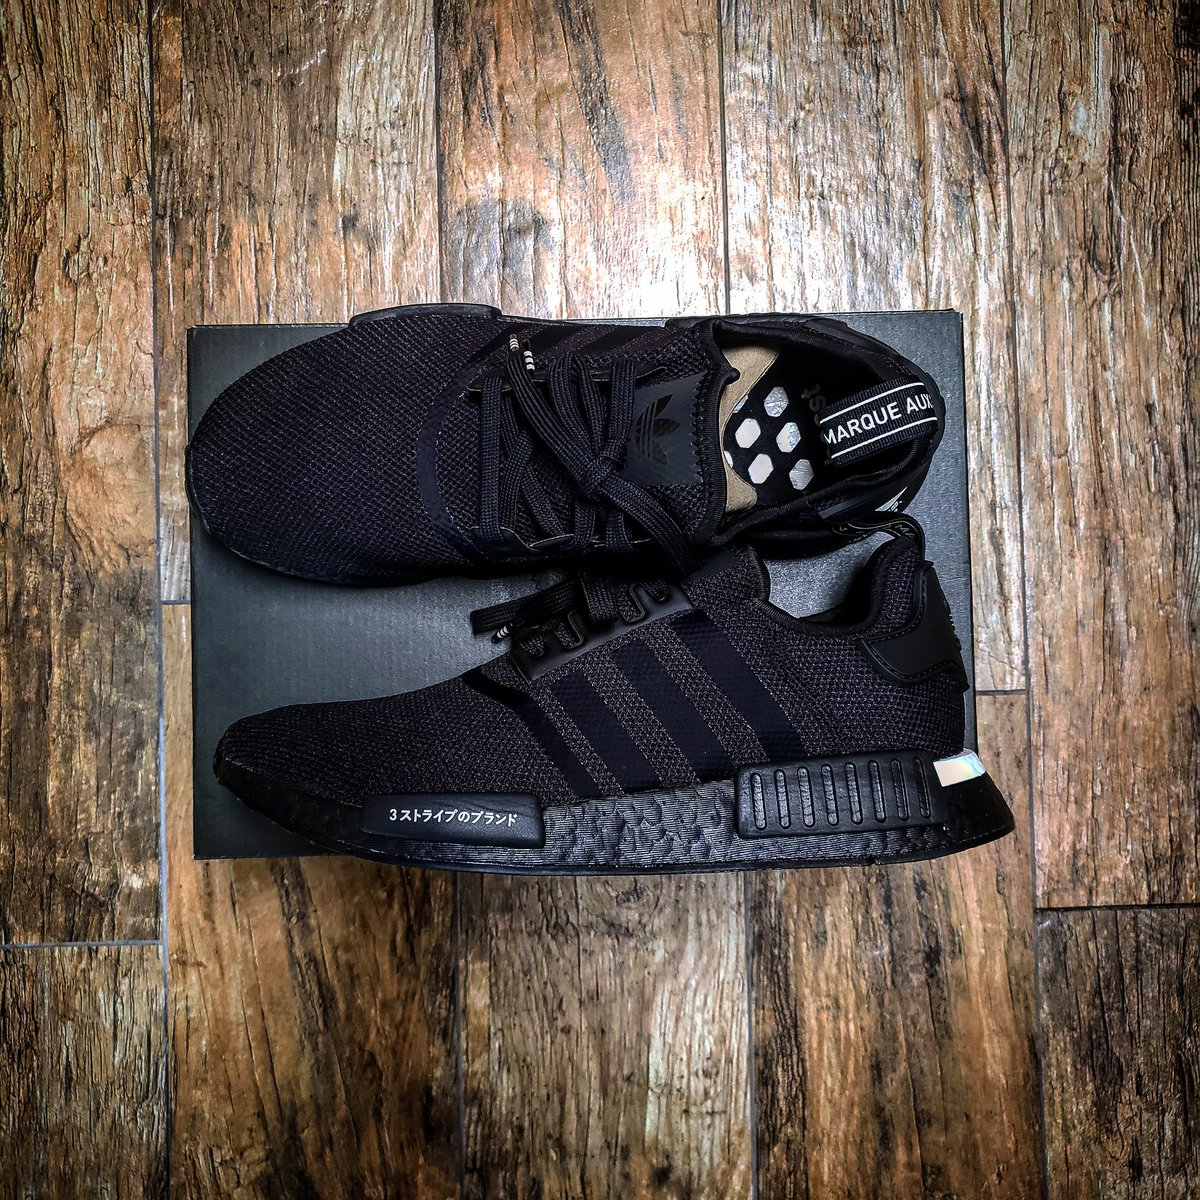 Wolfpack Sneakers On Twitter Adidas Nmd R1 Japan Black 2019 Sz10 Ds Link In Bio Wolfpacksnkrs Dm Questions Offers Https T Co Yaot4jyata Adidas Nmd Nmdr1